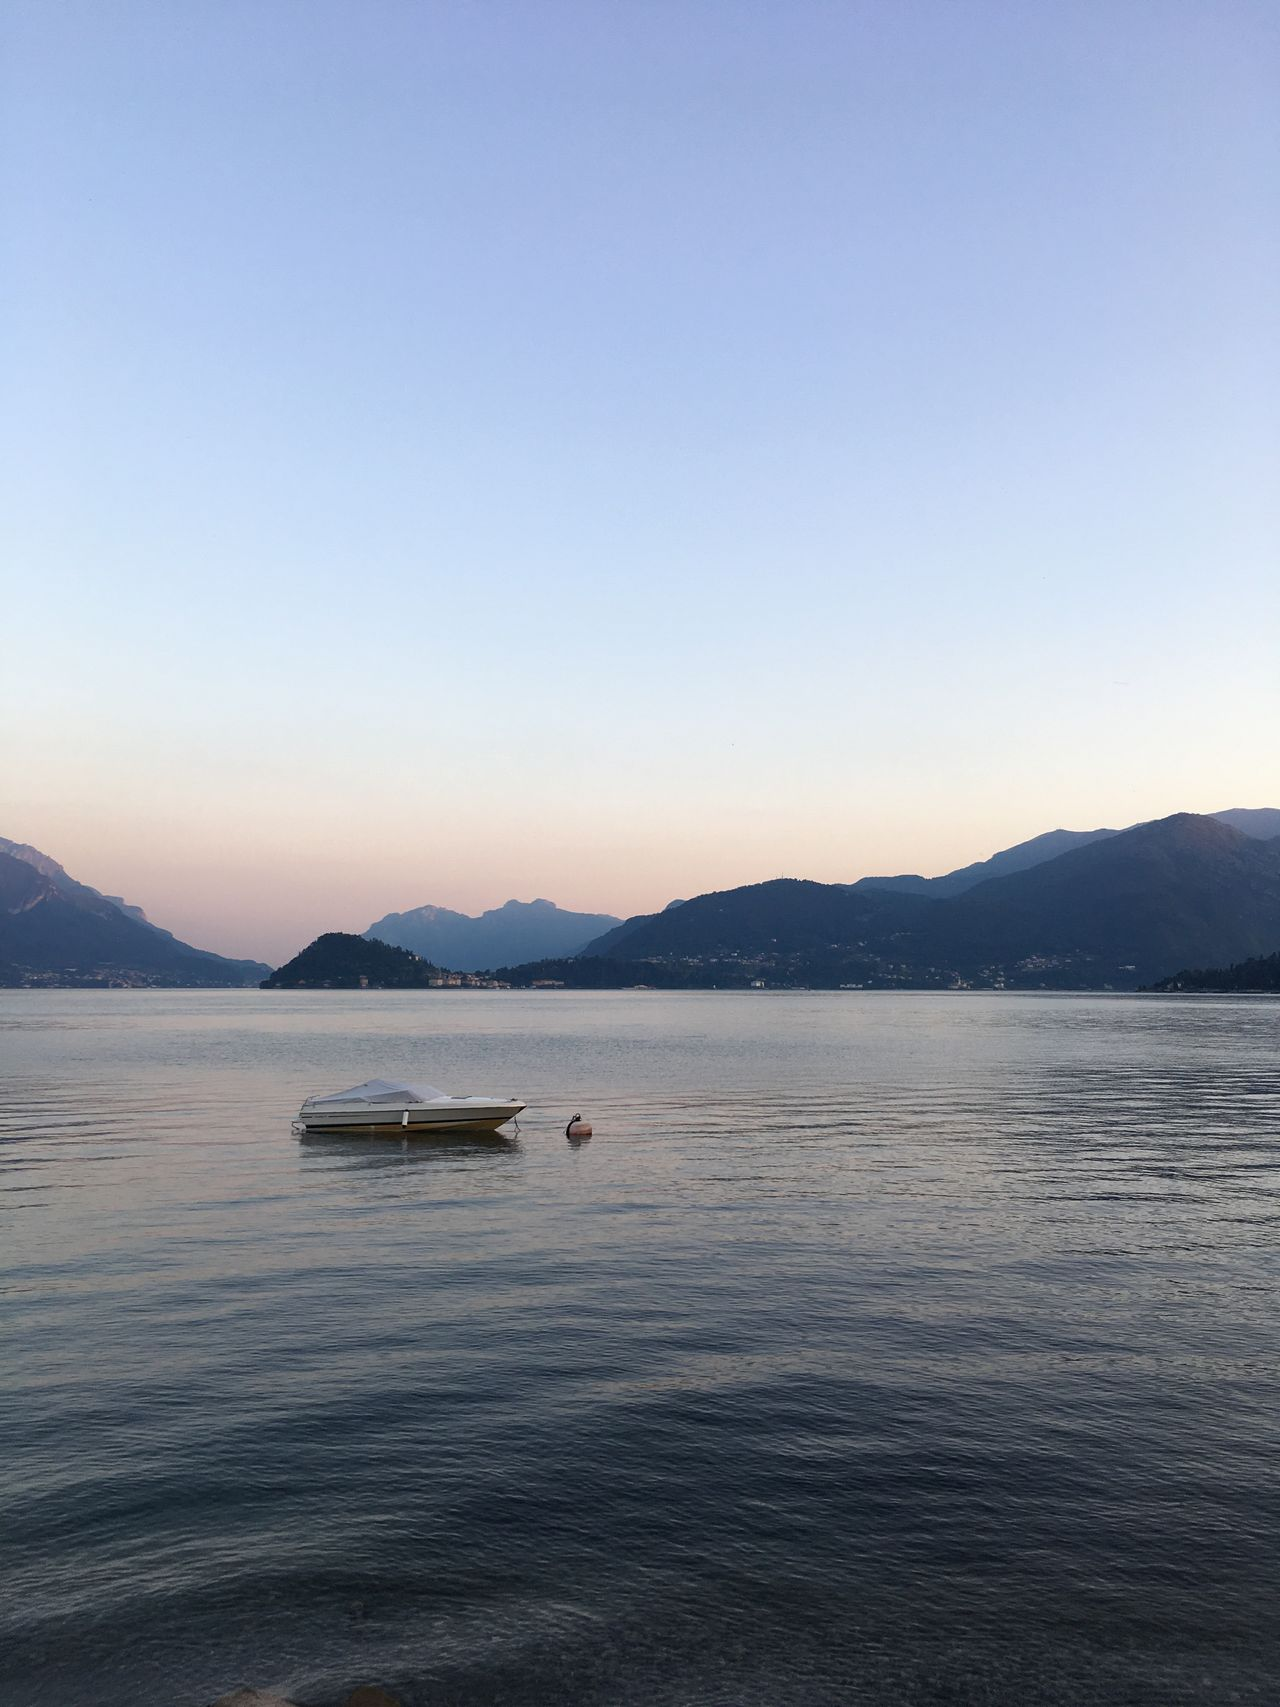 Mountain Copy Space Clear Sky Water Waterfront Nautical Vessel Mountain Range Transportation Tranquil Scene Sunset Boat Scenics Tranquility Dusk Beauty In Nature Calm Blue Nature Sea Non-urban Scene Lakecomo Italy Carefree Tourism Travel